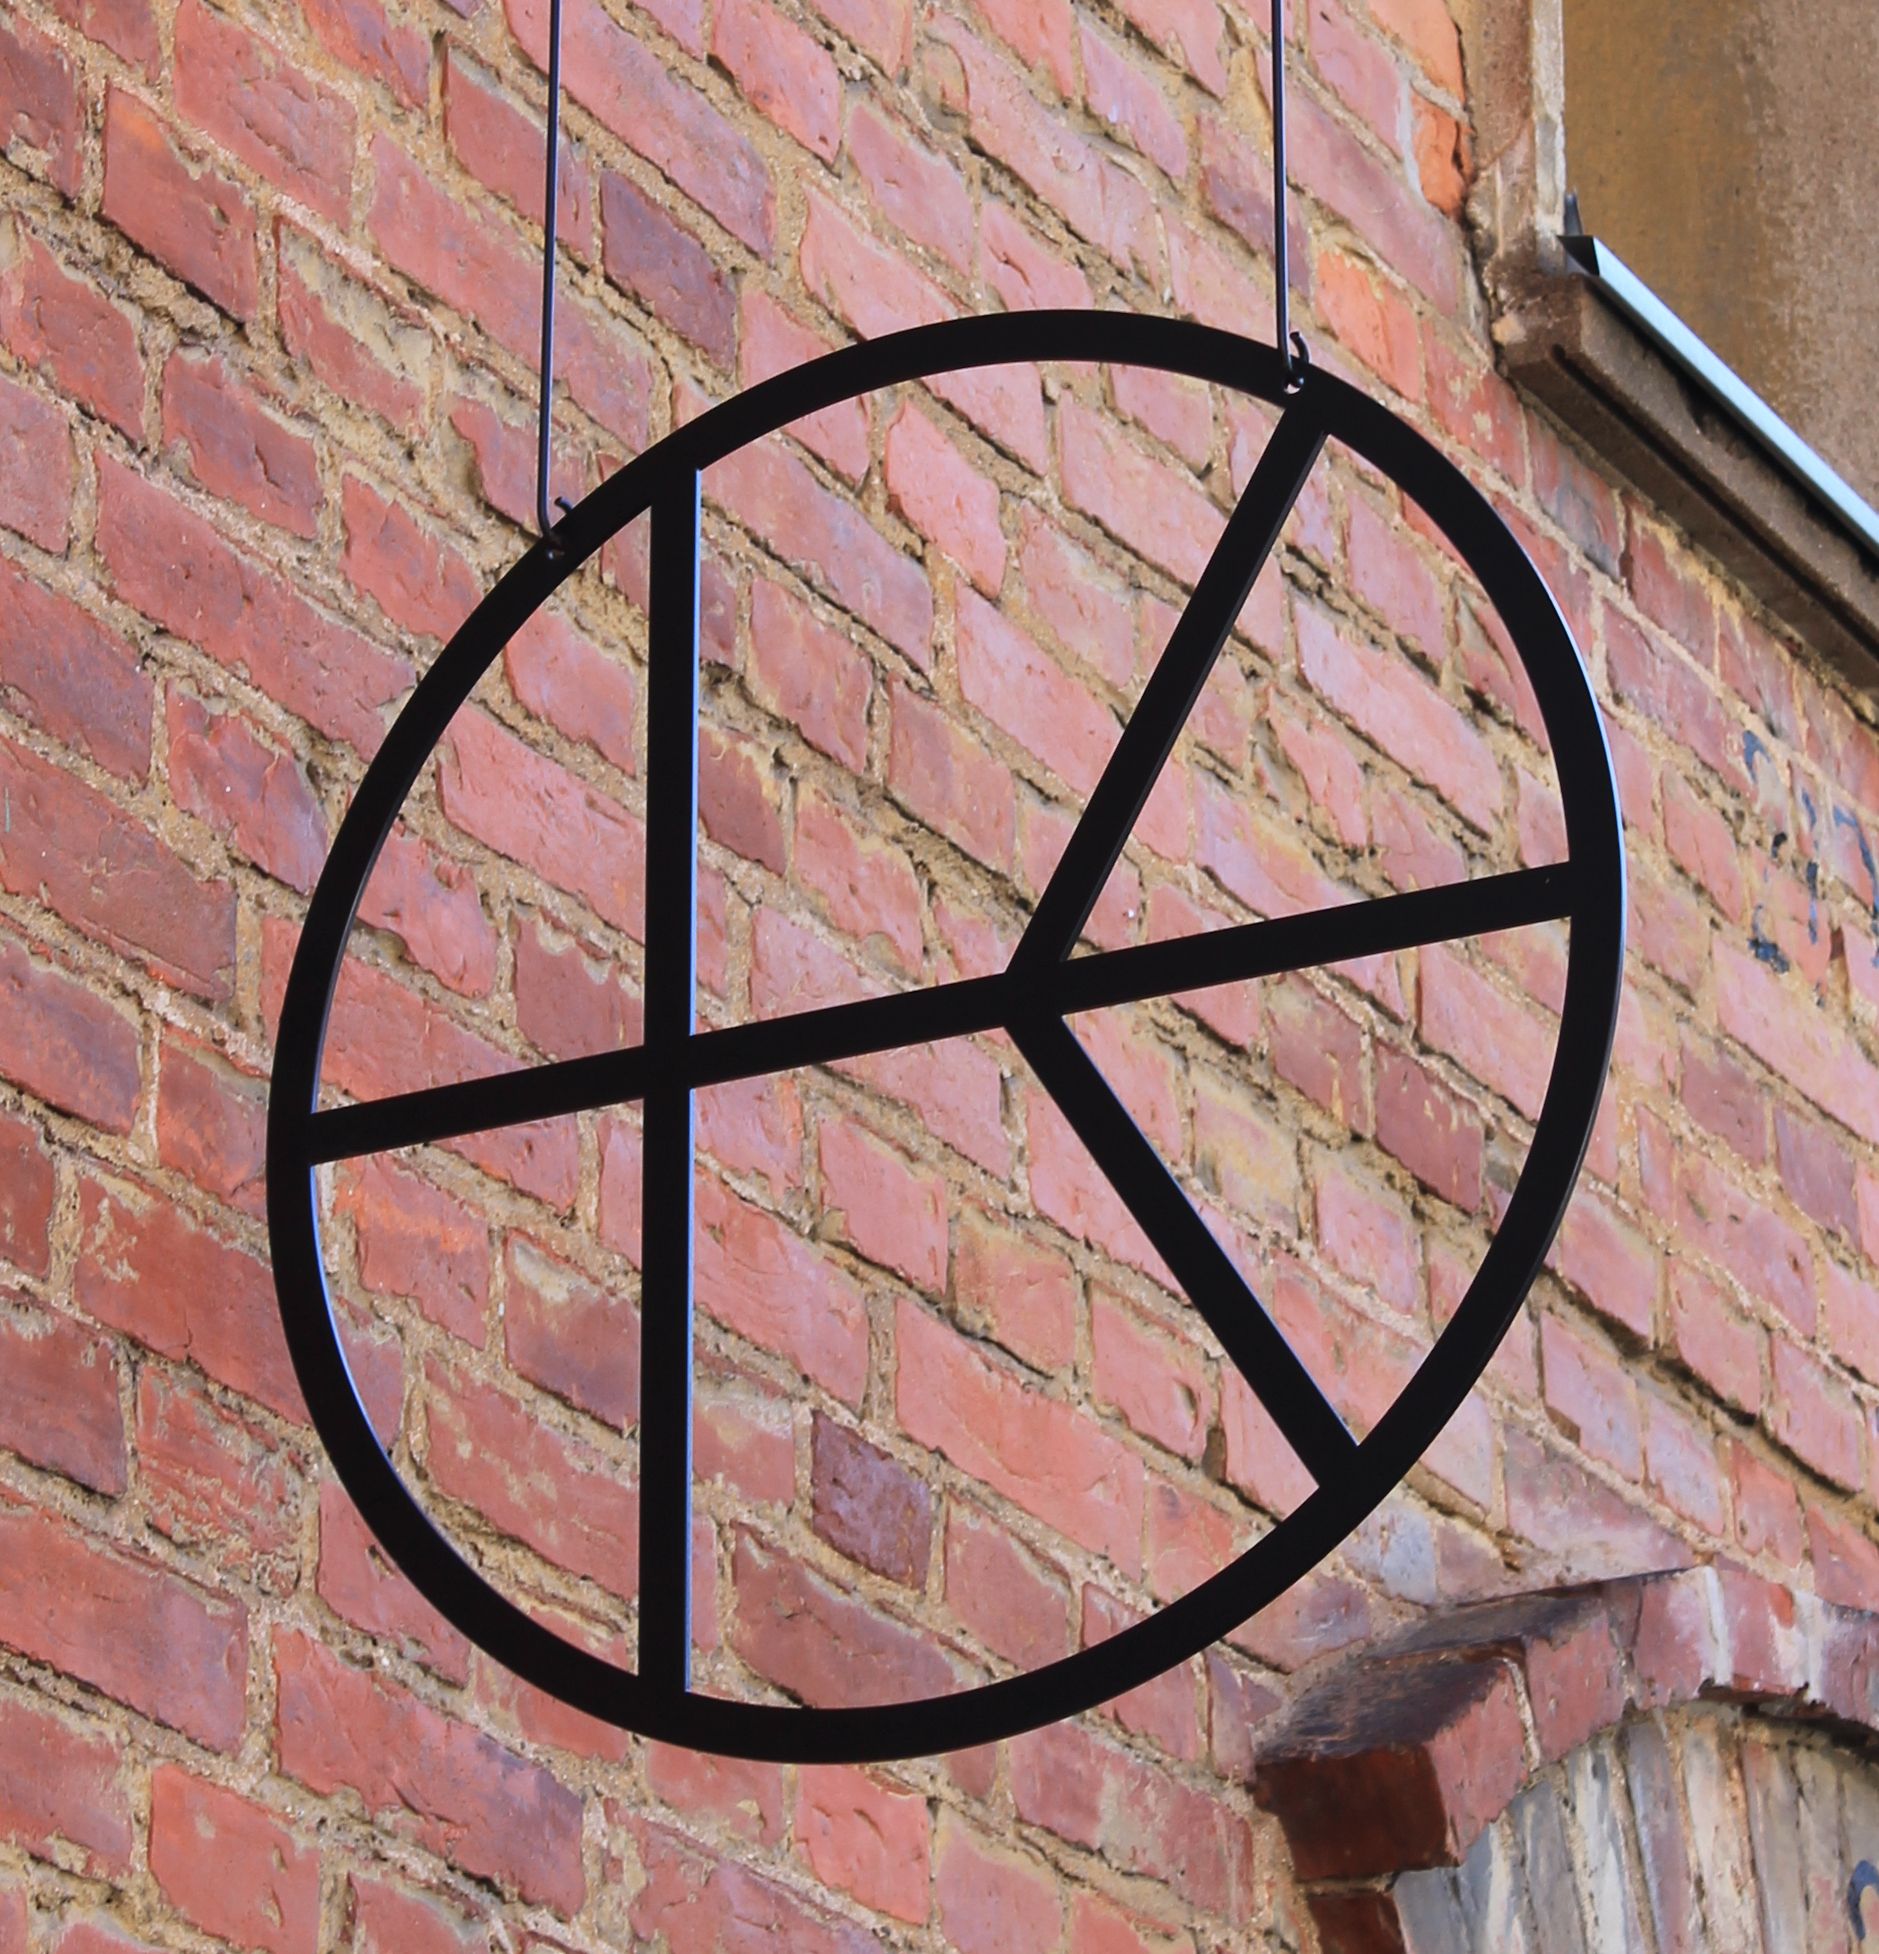 Black metal hanging sign of Kalevan Navetta logo, inspired by the round window in Vintti